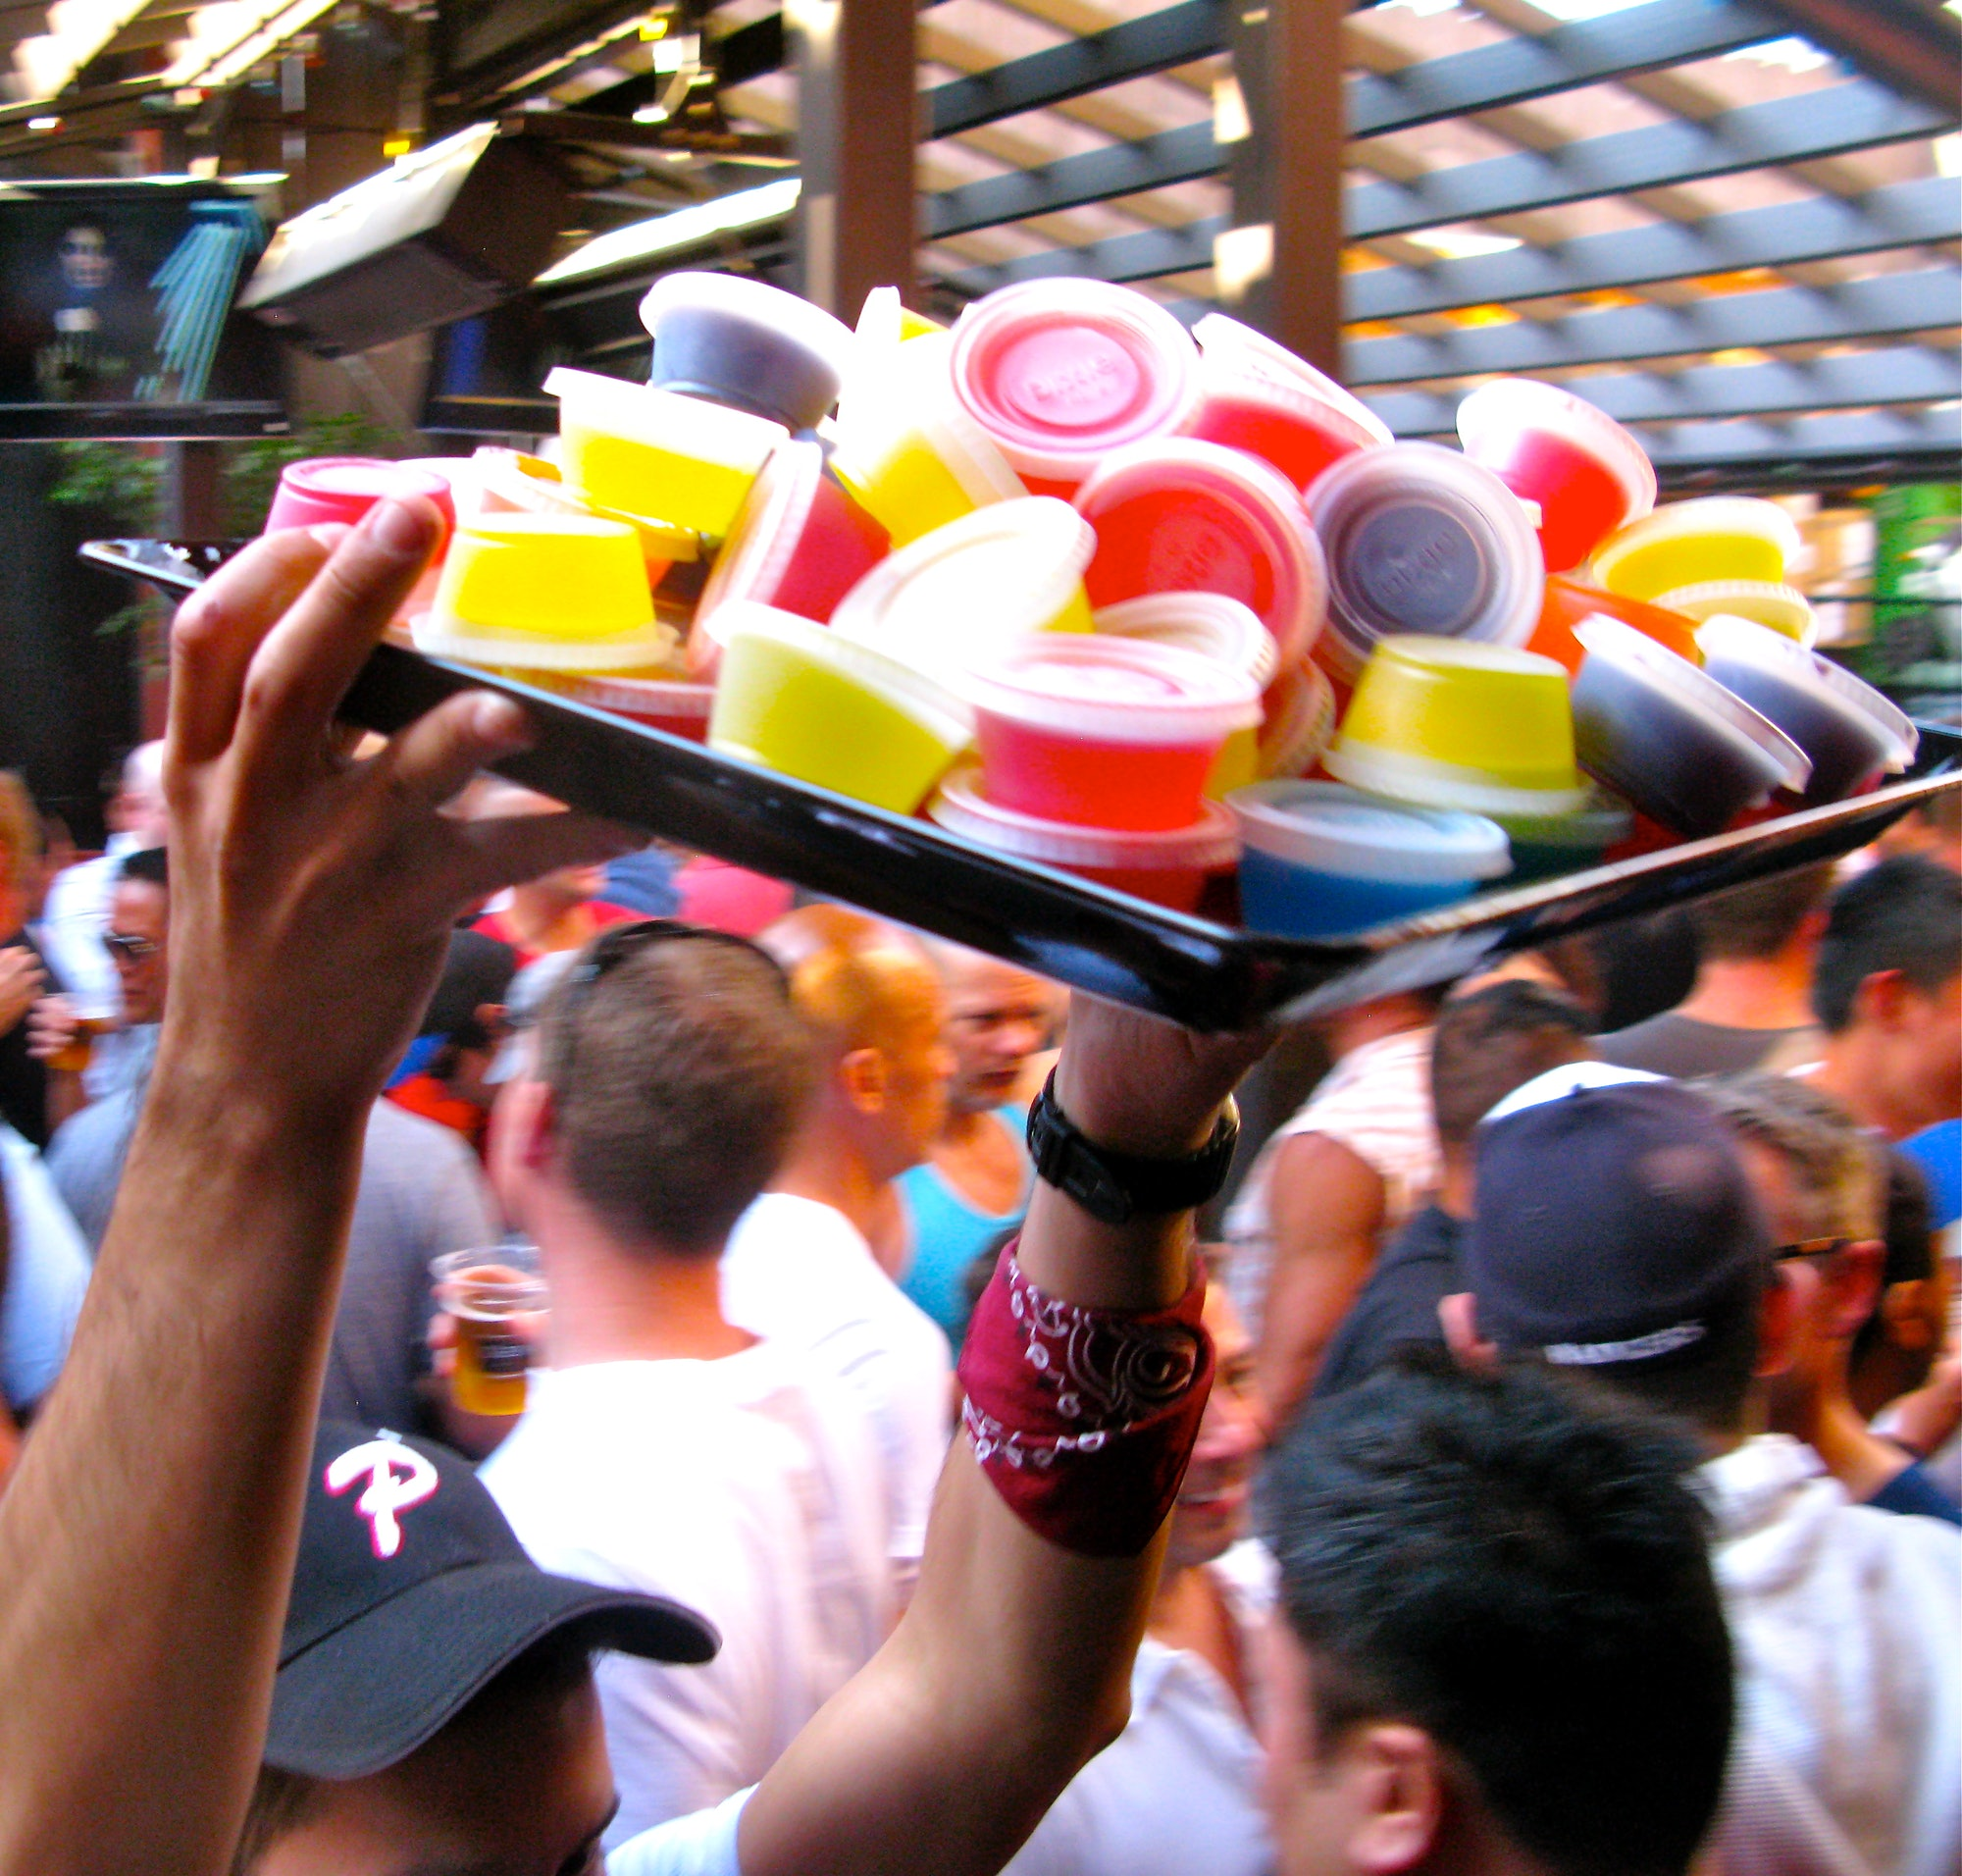 vodka jello shots for the rainbow boys : toad hall, castro, san francisco (2012)